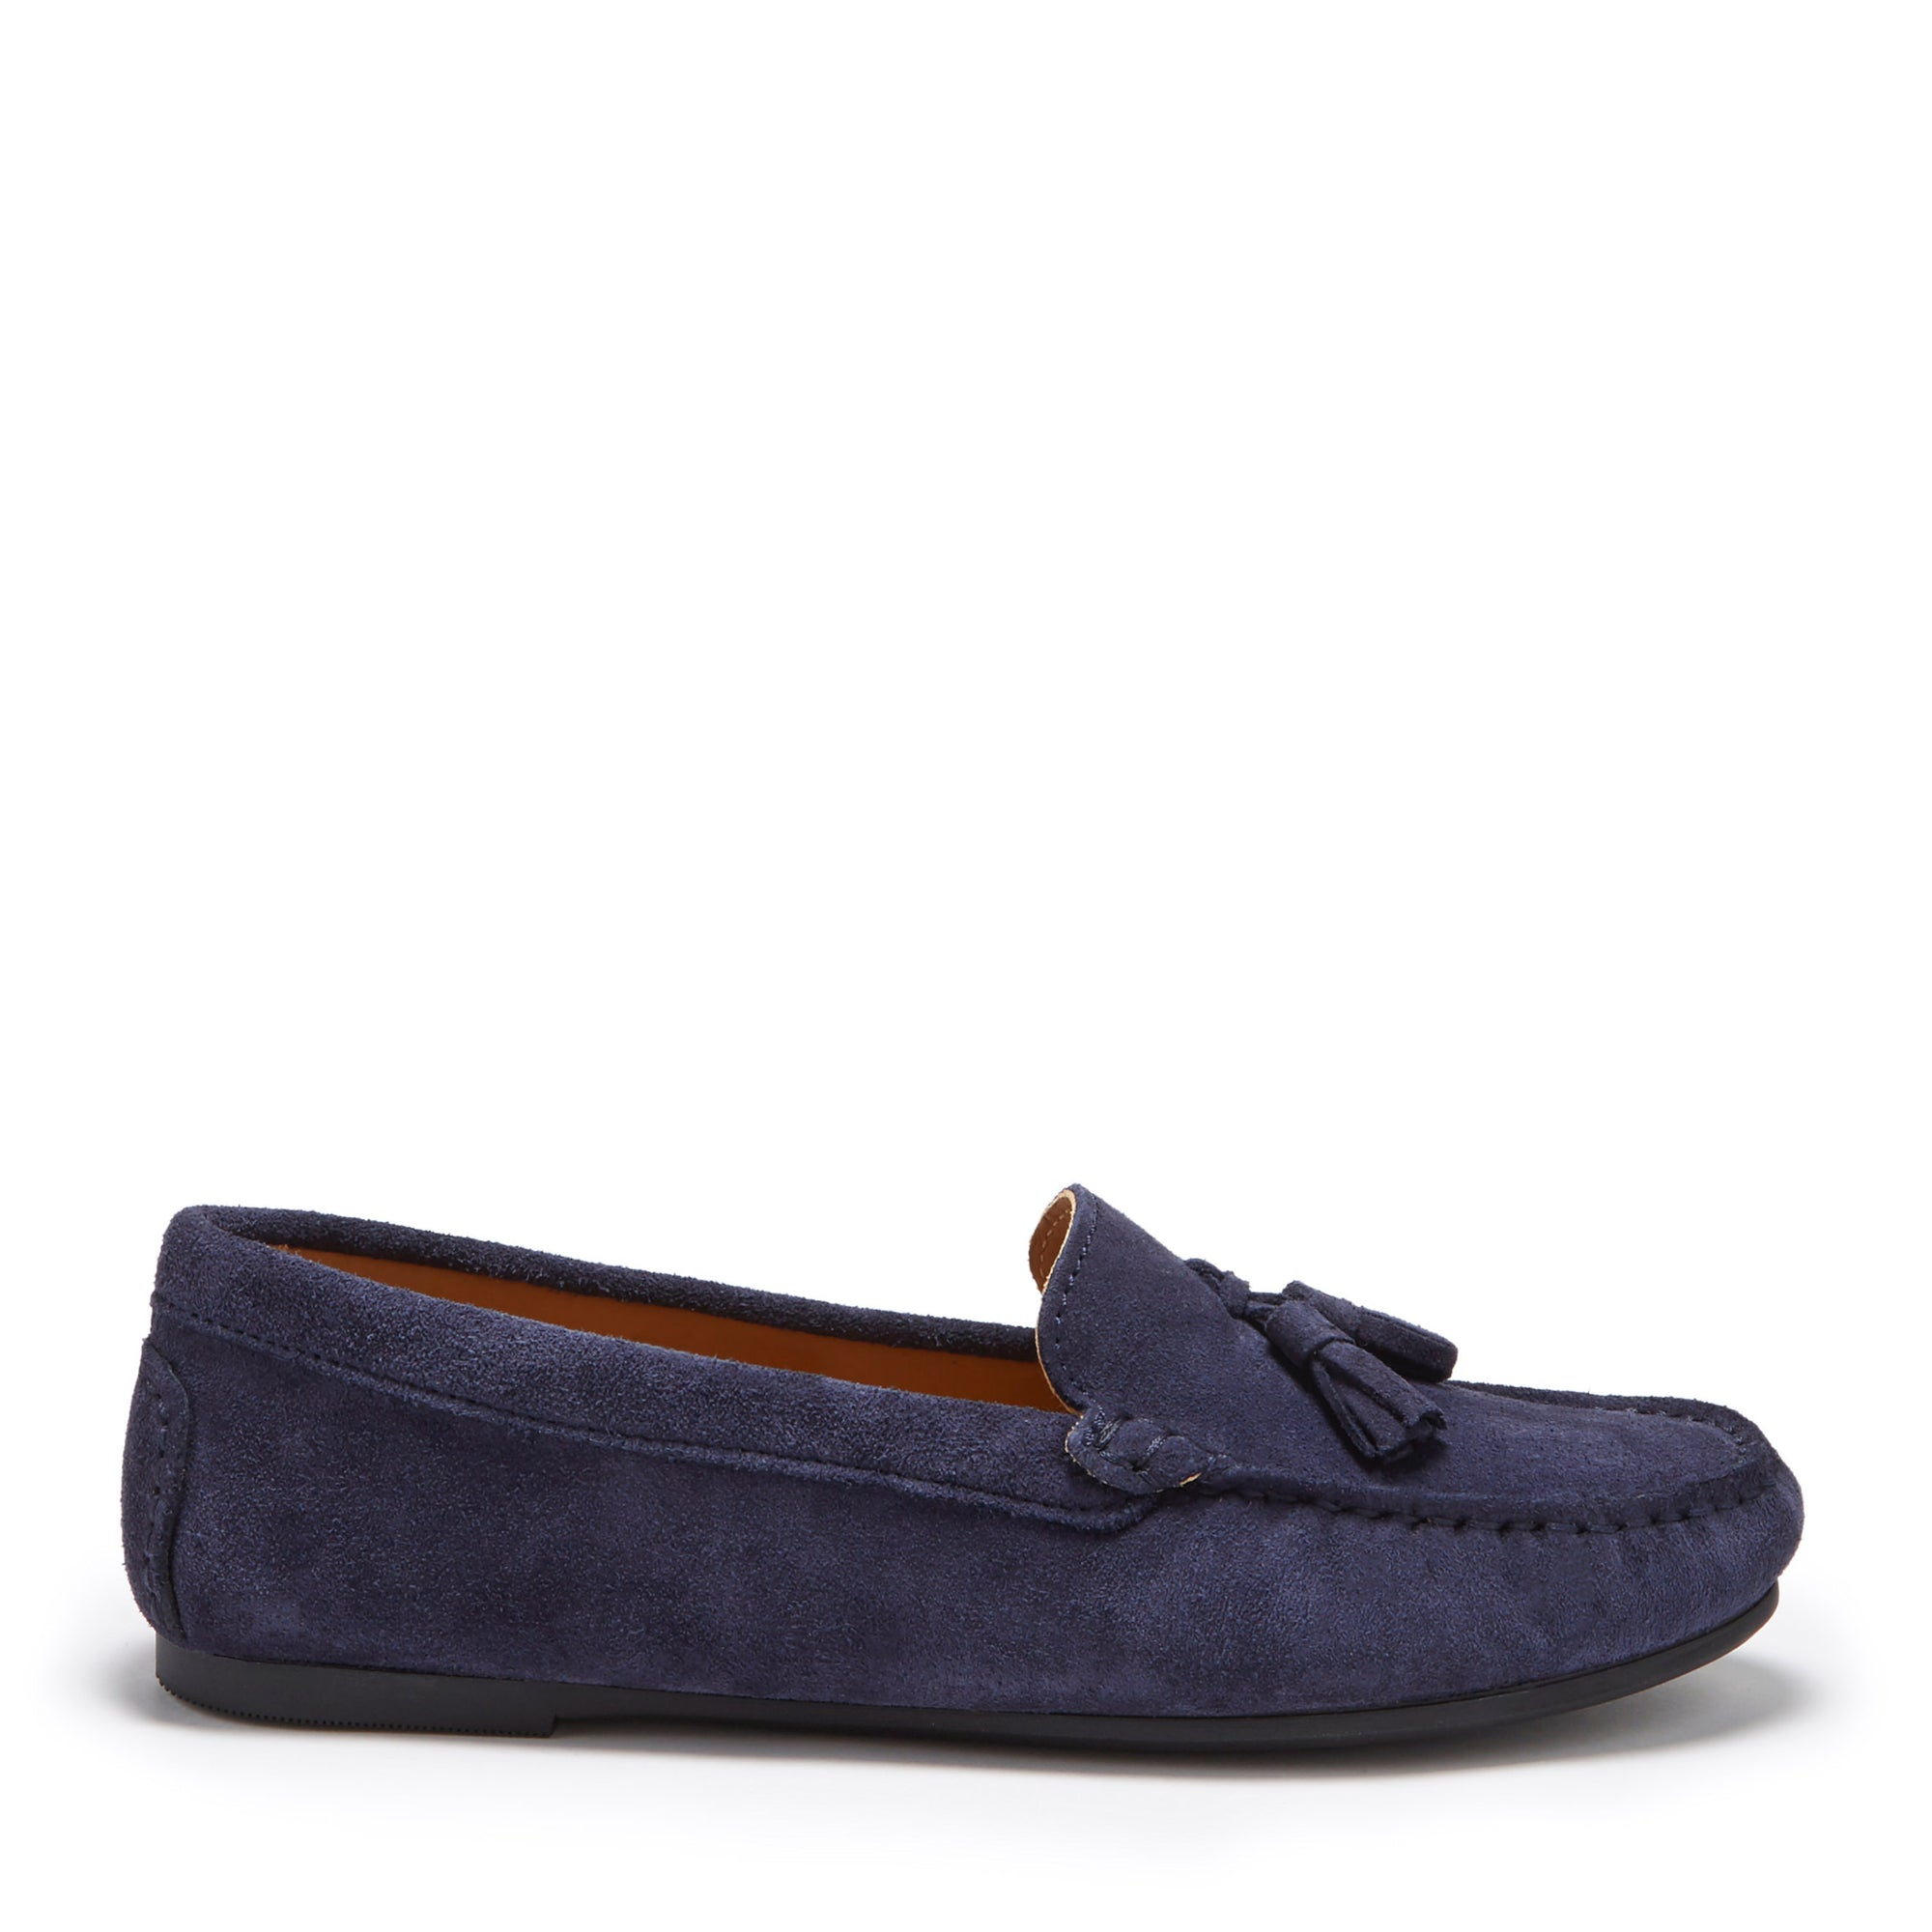 Women's Tasselled Driving Loafers Full Rubber Sole, navy blue suede